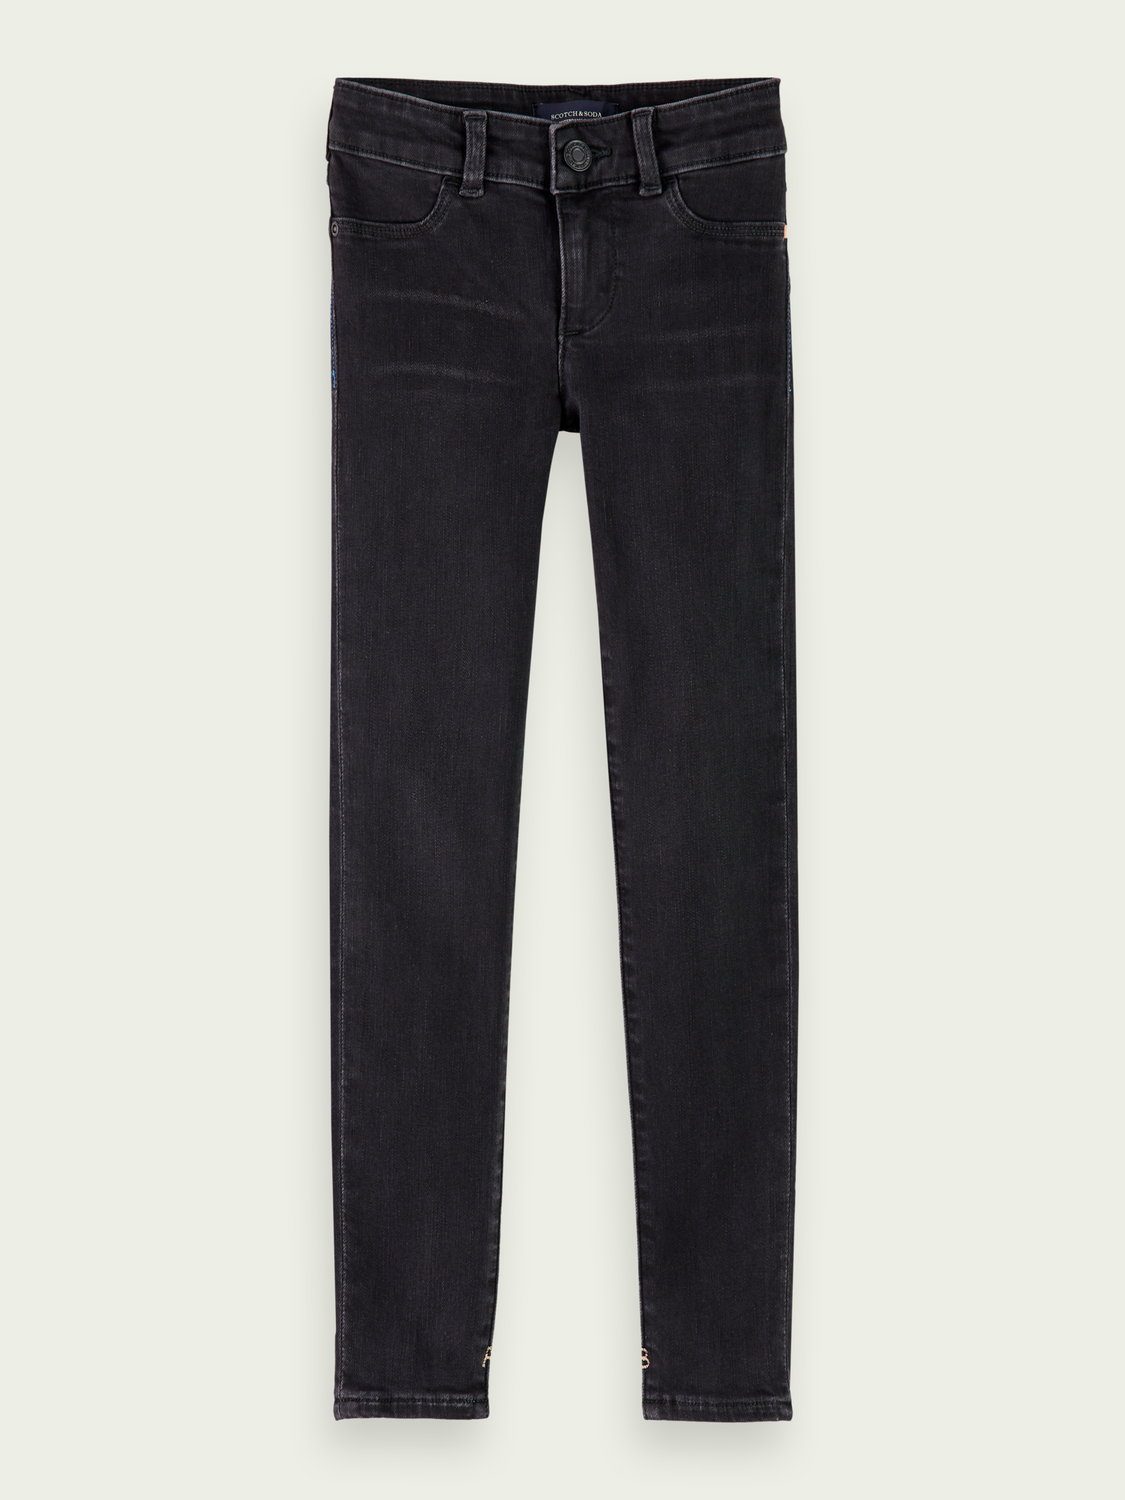 Girls La Milou  - Black Rock | Super skinny fit jeans